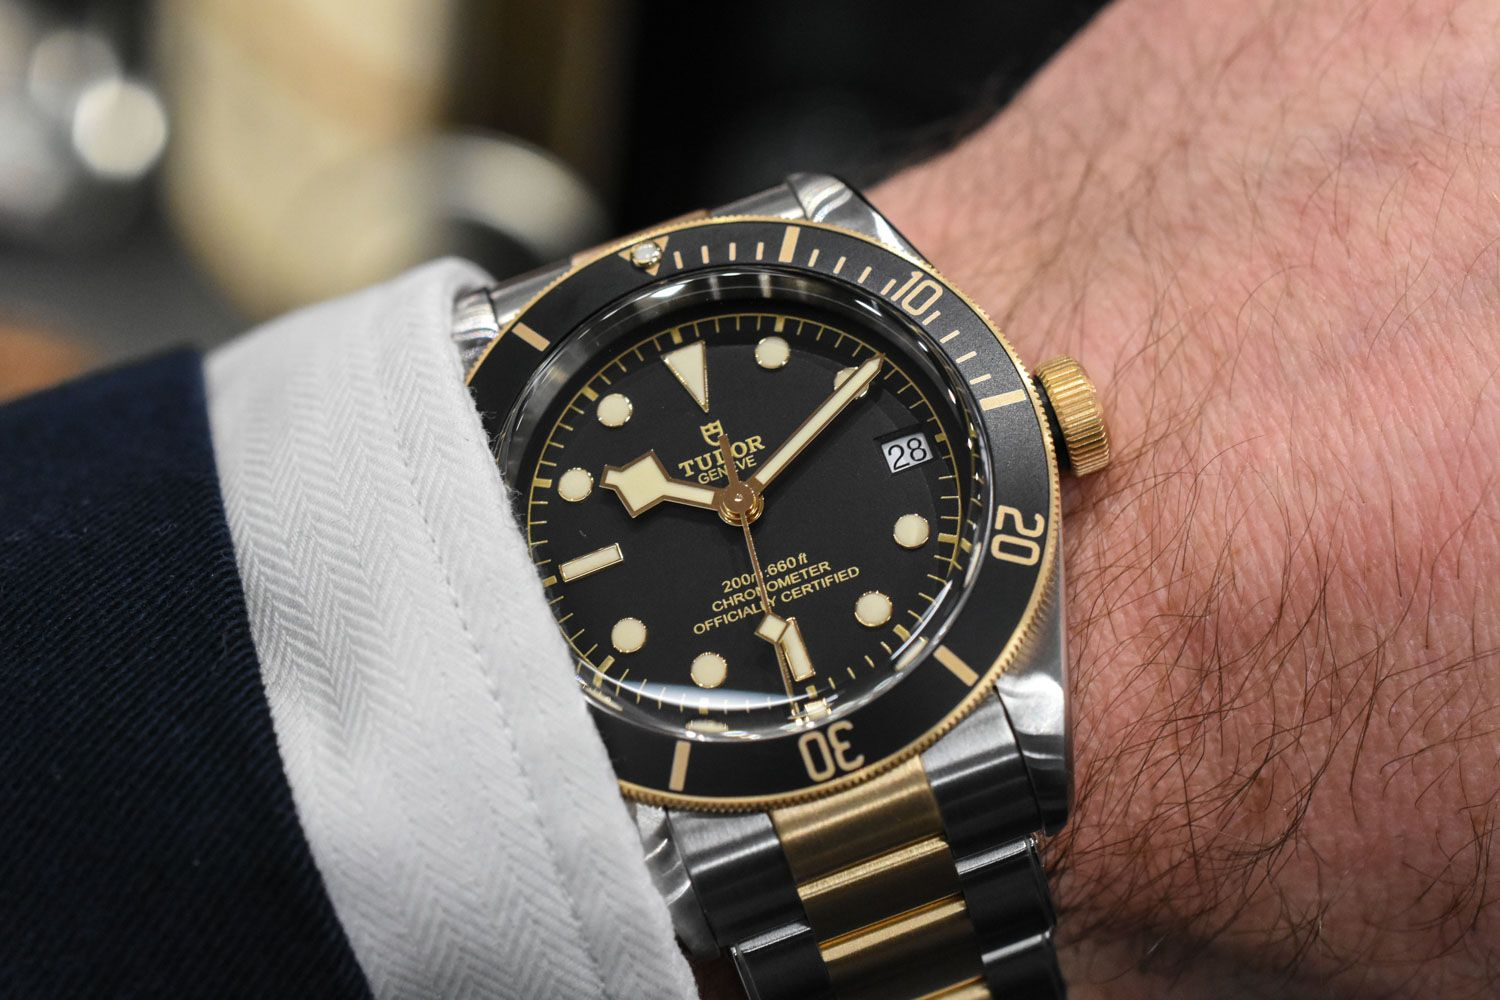 1f59b7d97b62 Tudor Black Bay Steel-Gold-0921. Find this Pin and more on watches by  288448402019333.